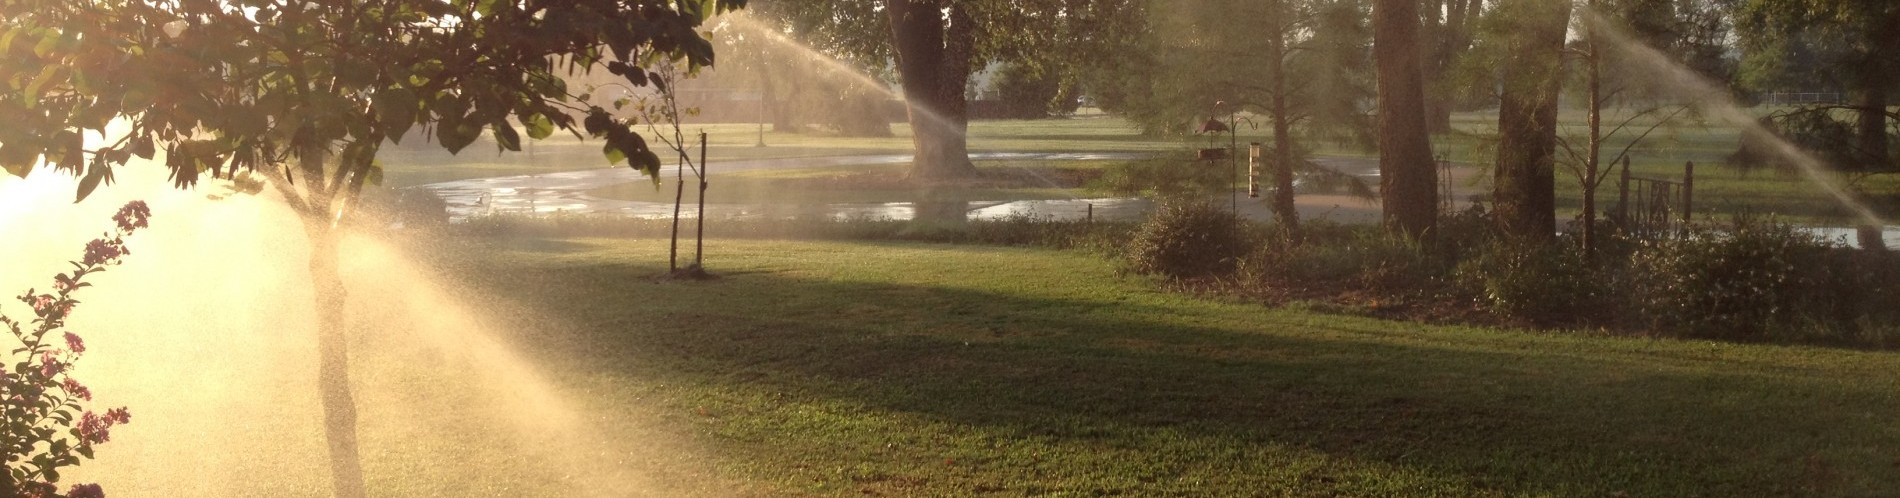 Irrigation systems and Outdoor landscaping